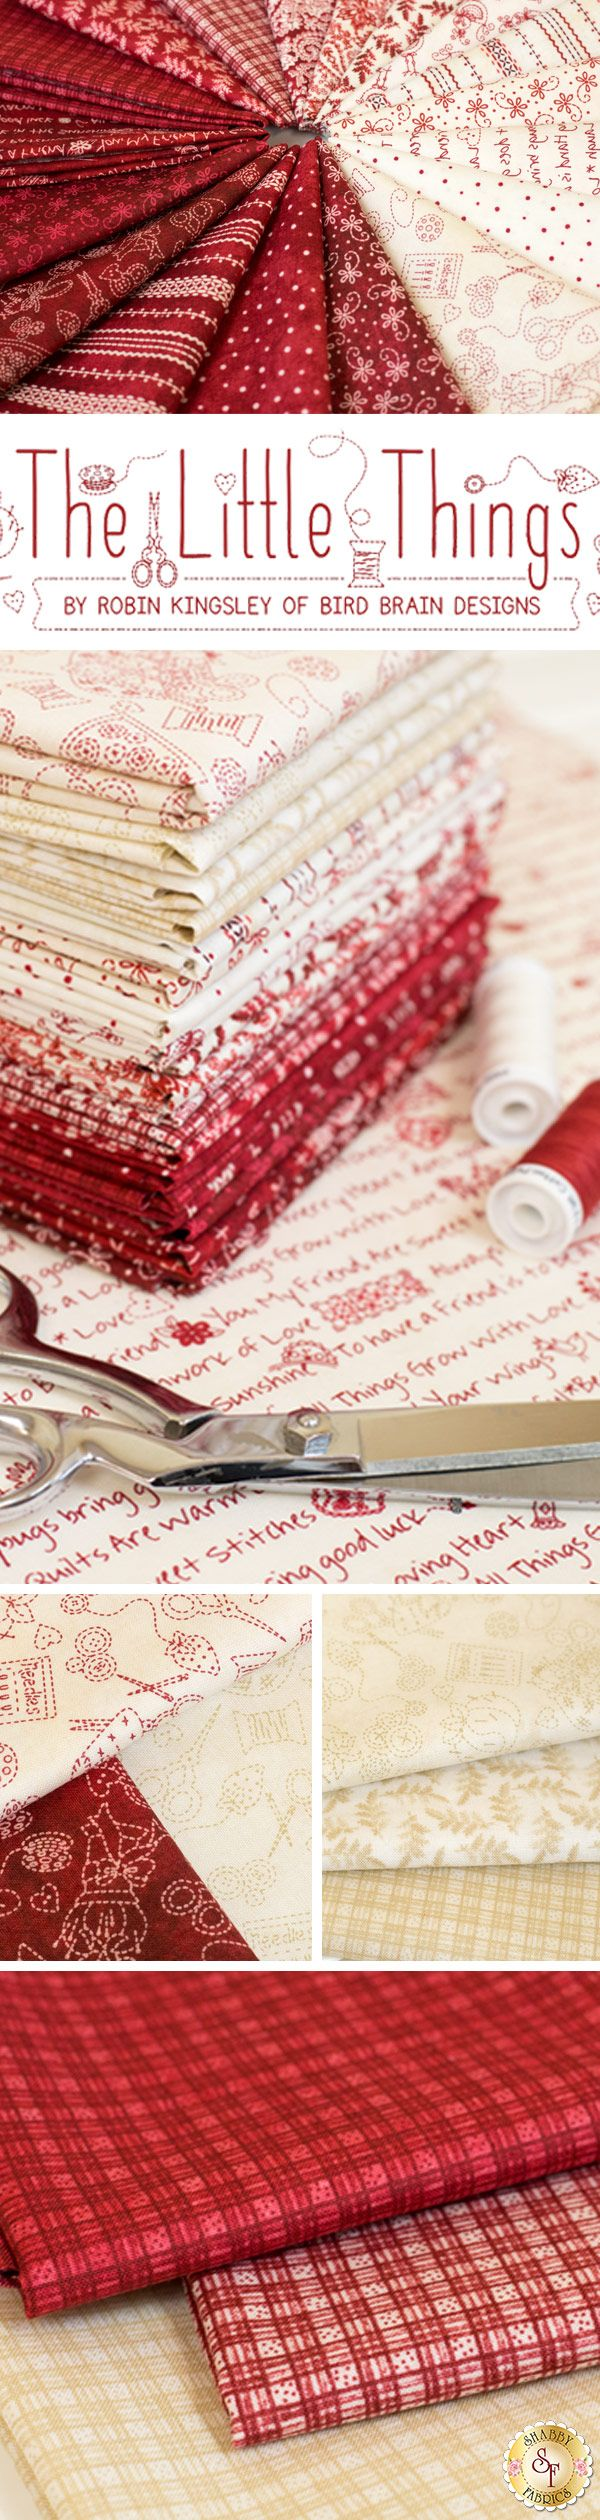 The Little Things by Robin Kingsley from Maywood Studio Fabrics is a beautiful collection available at Shabby Fabrics